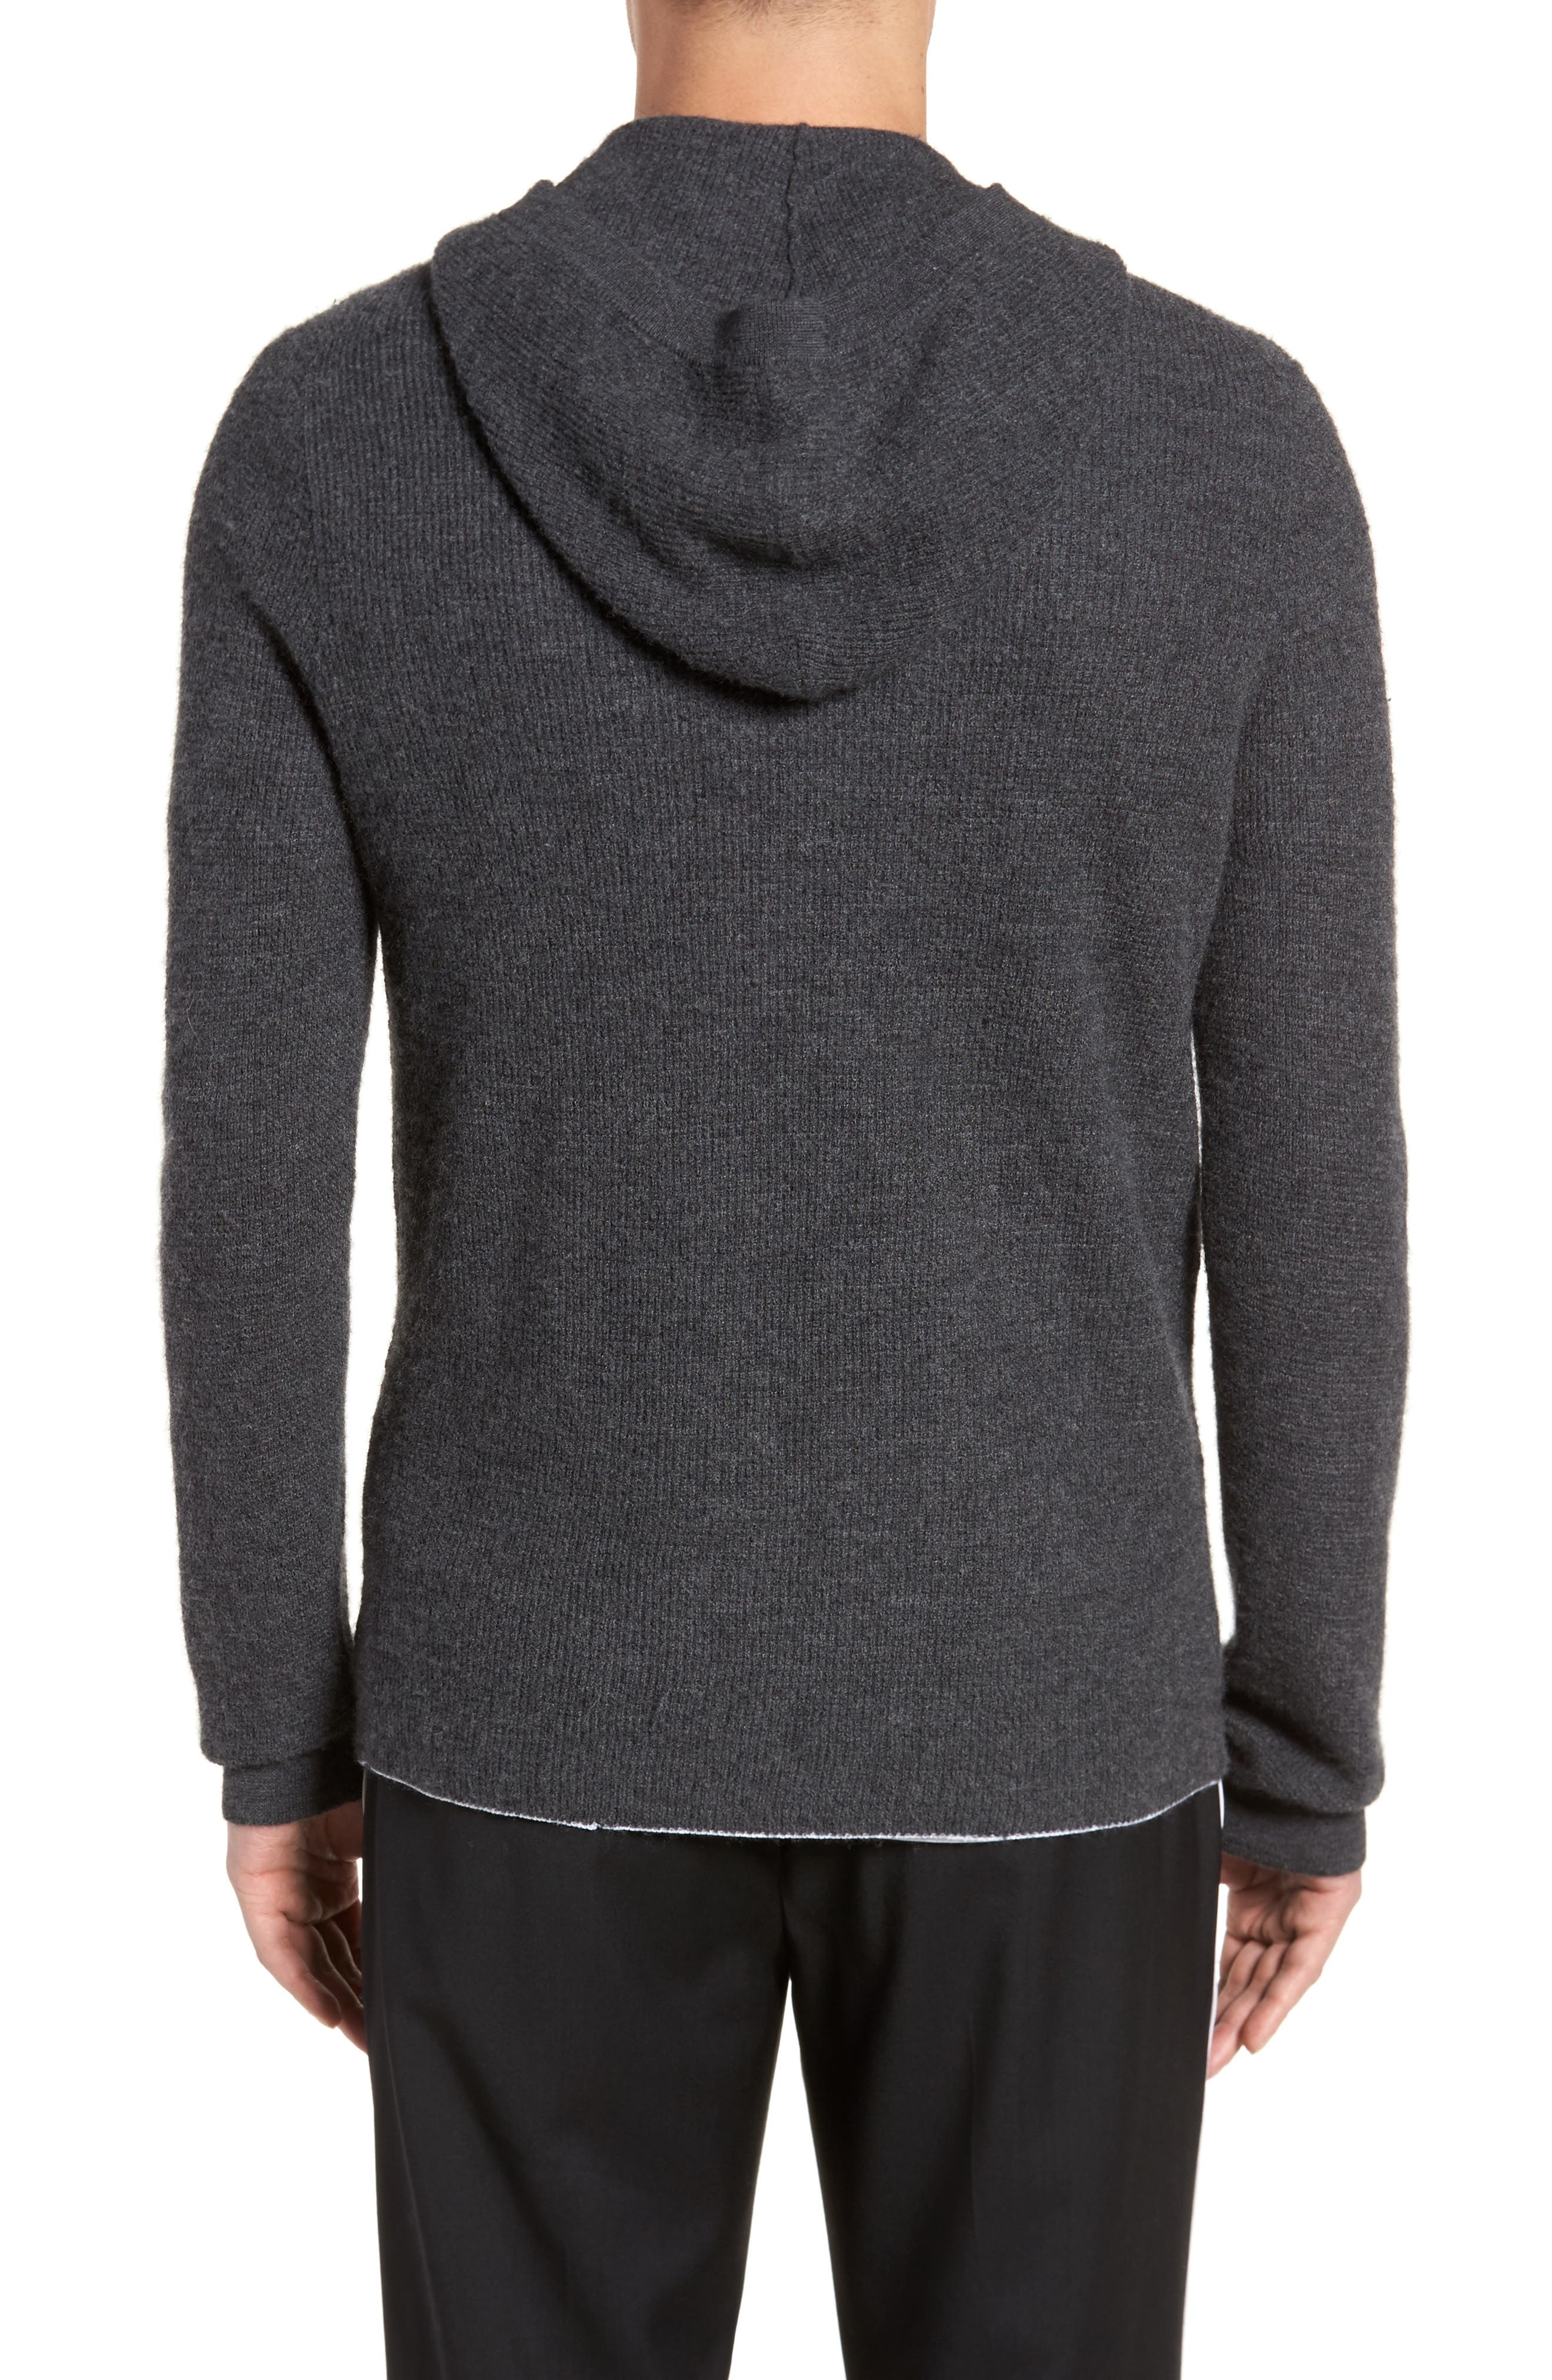 Thermal Knit Cashmere Hooded Sweater,                             Alternate thumbnail 2, color,                             020